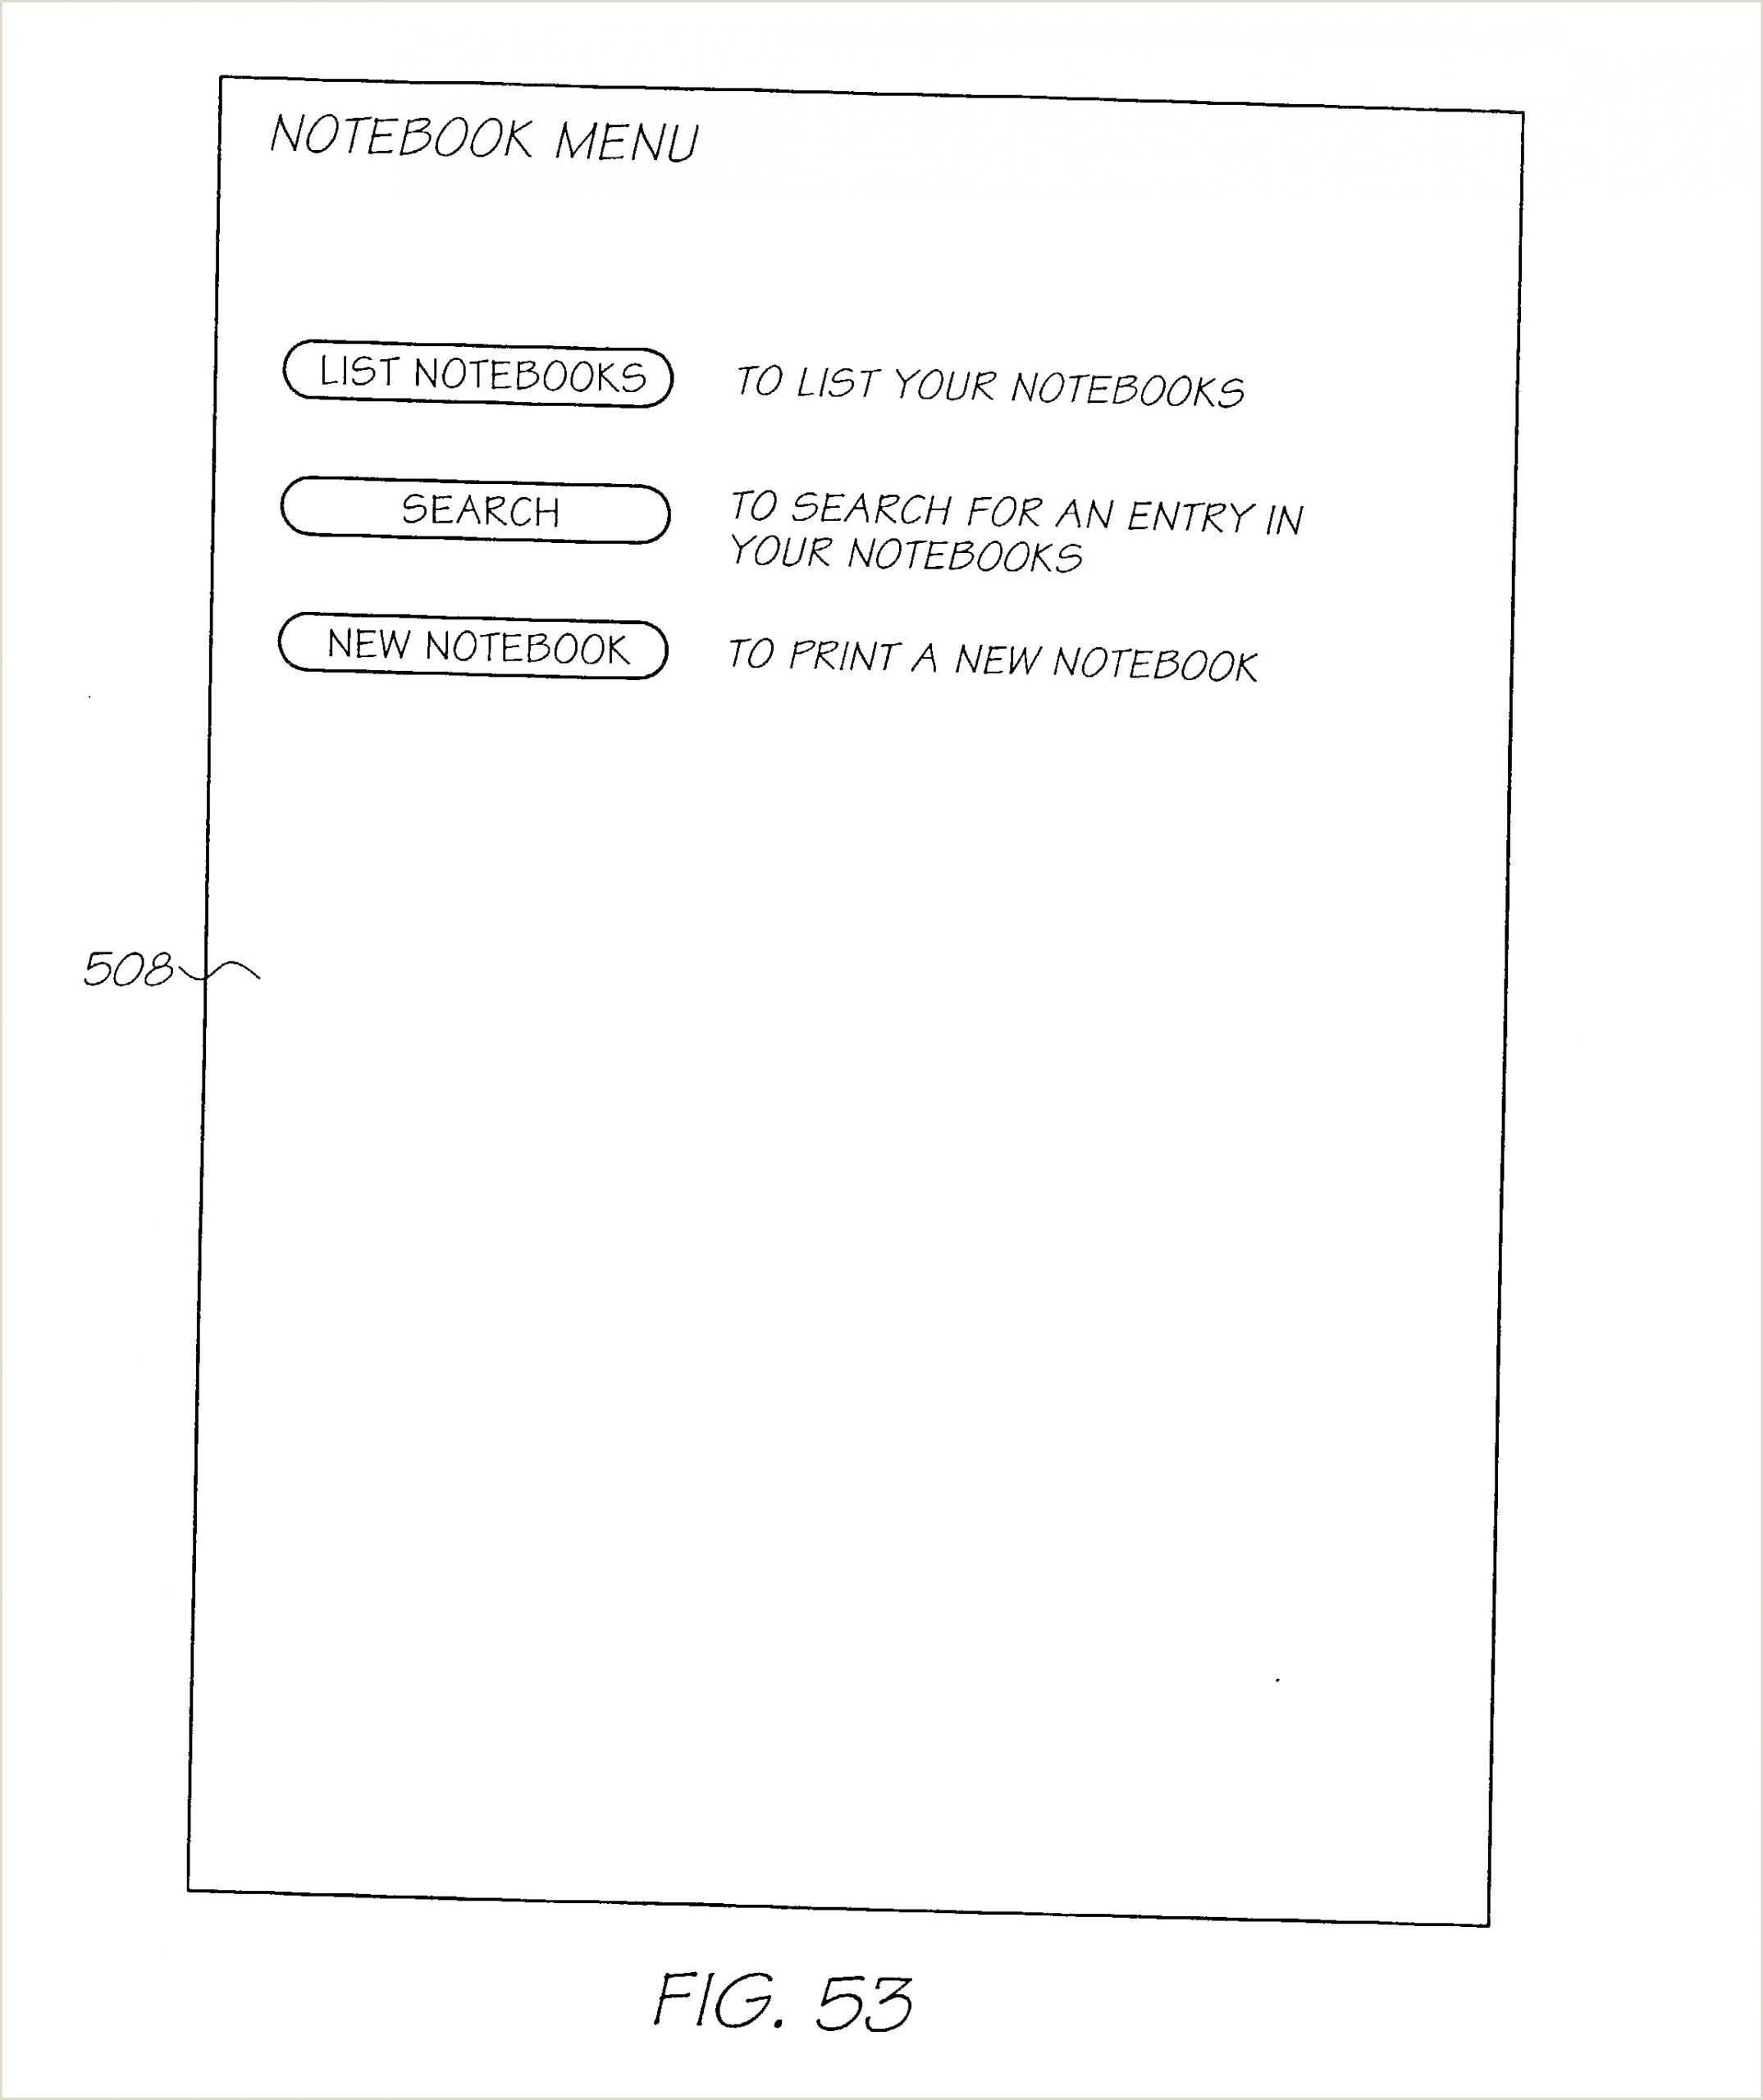 Vista Print Banners Us A1 Method And System For Note Taking Using